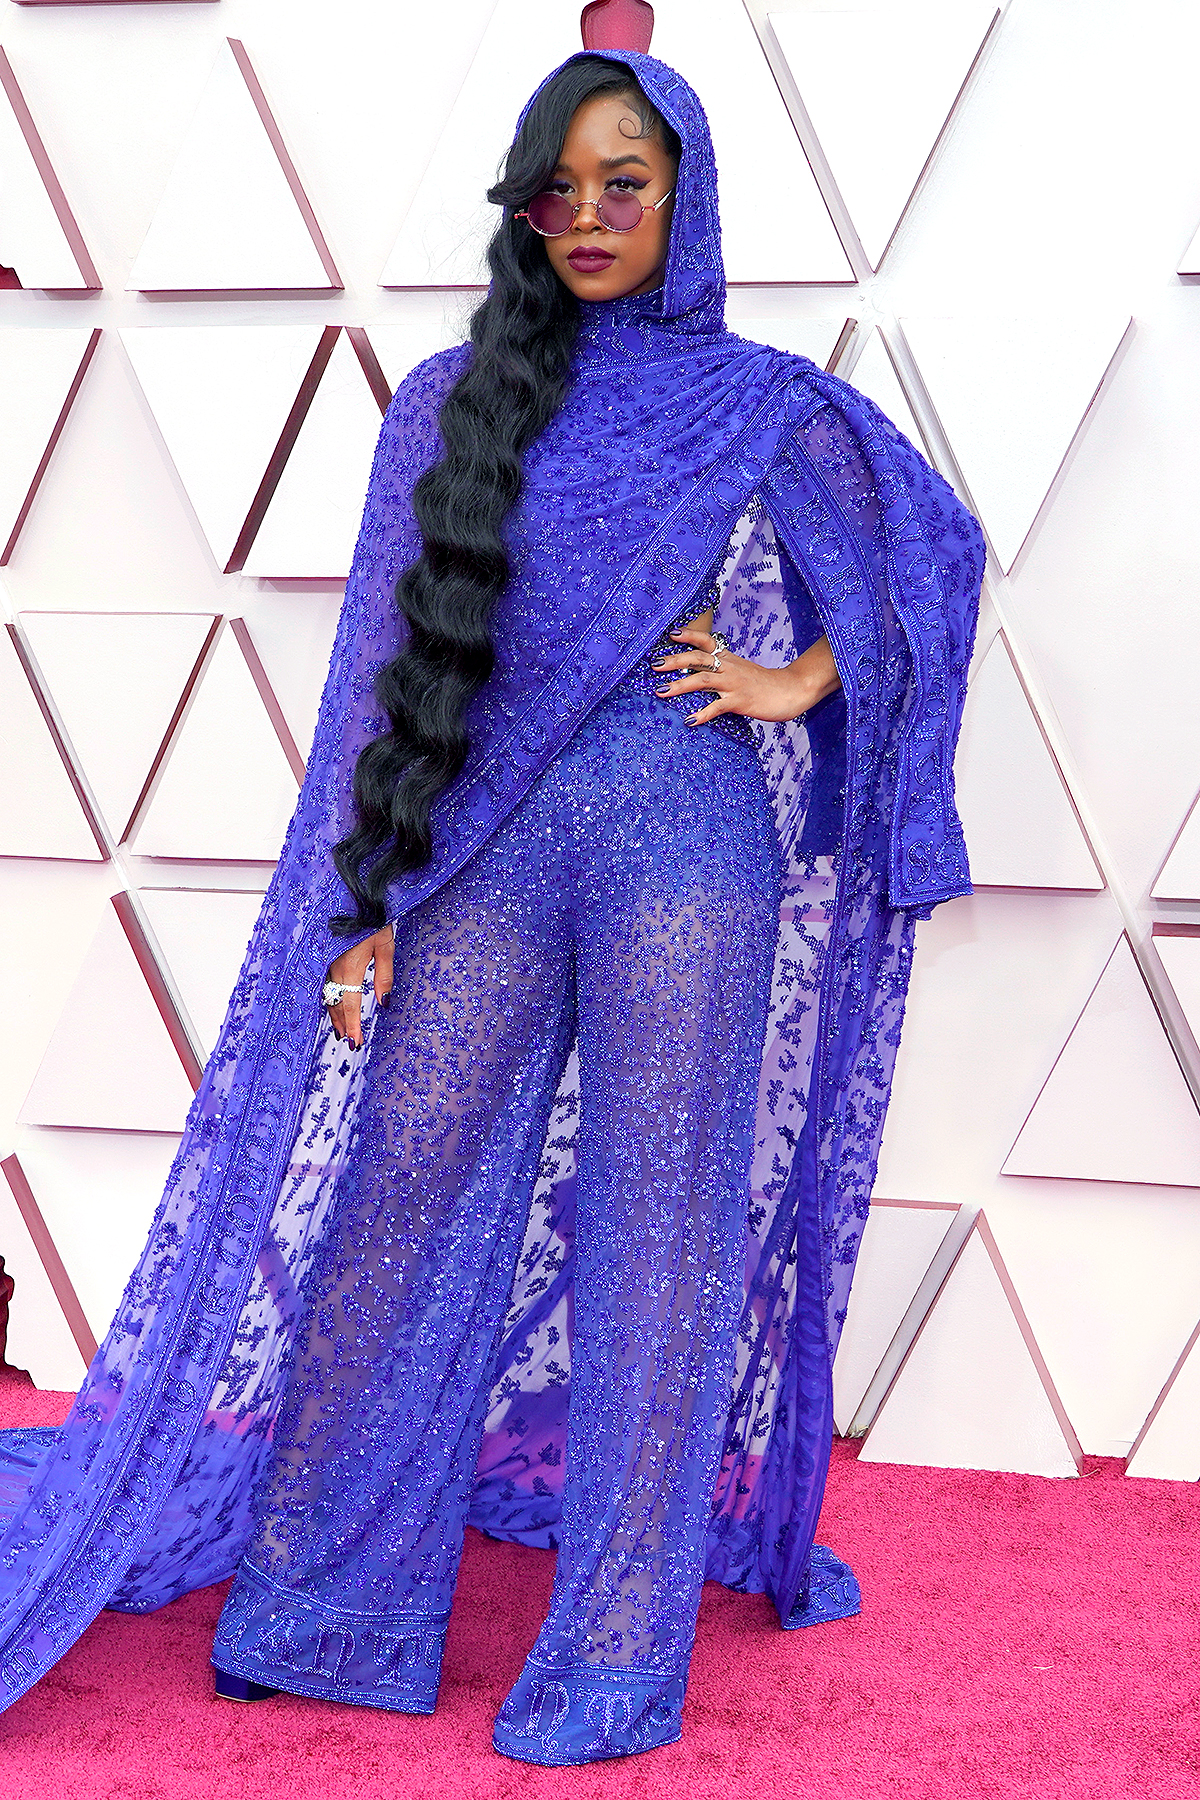 H.E.R. attends the 63rd Annual GRAMMY Awards at Los Angeles Convention Center on March 14, 2021